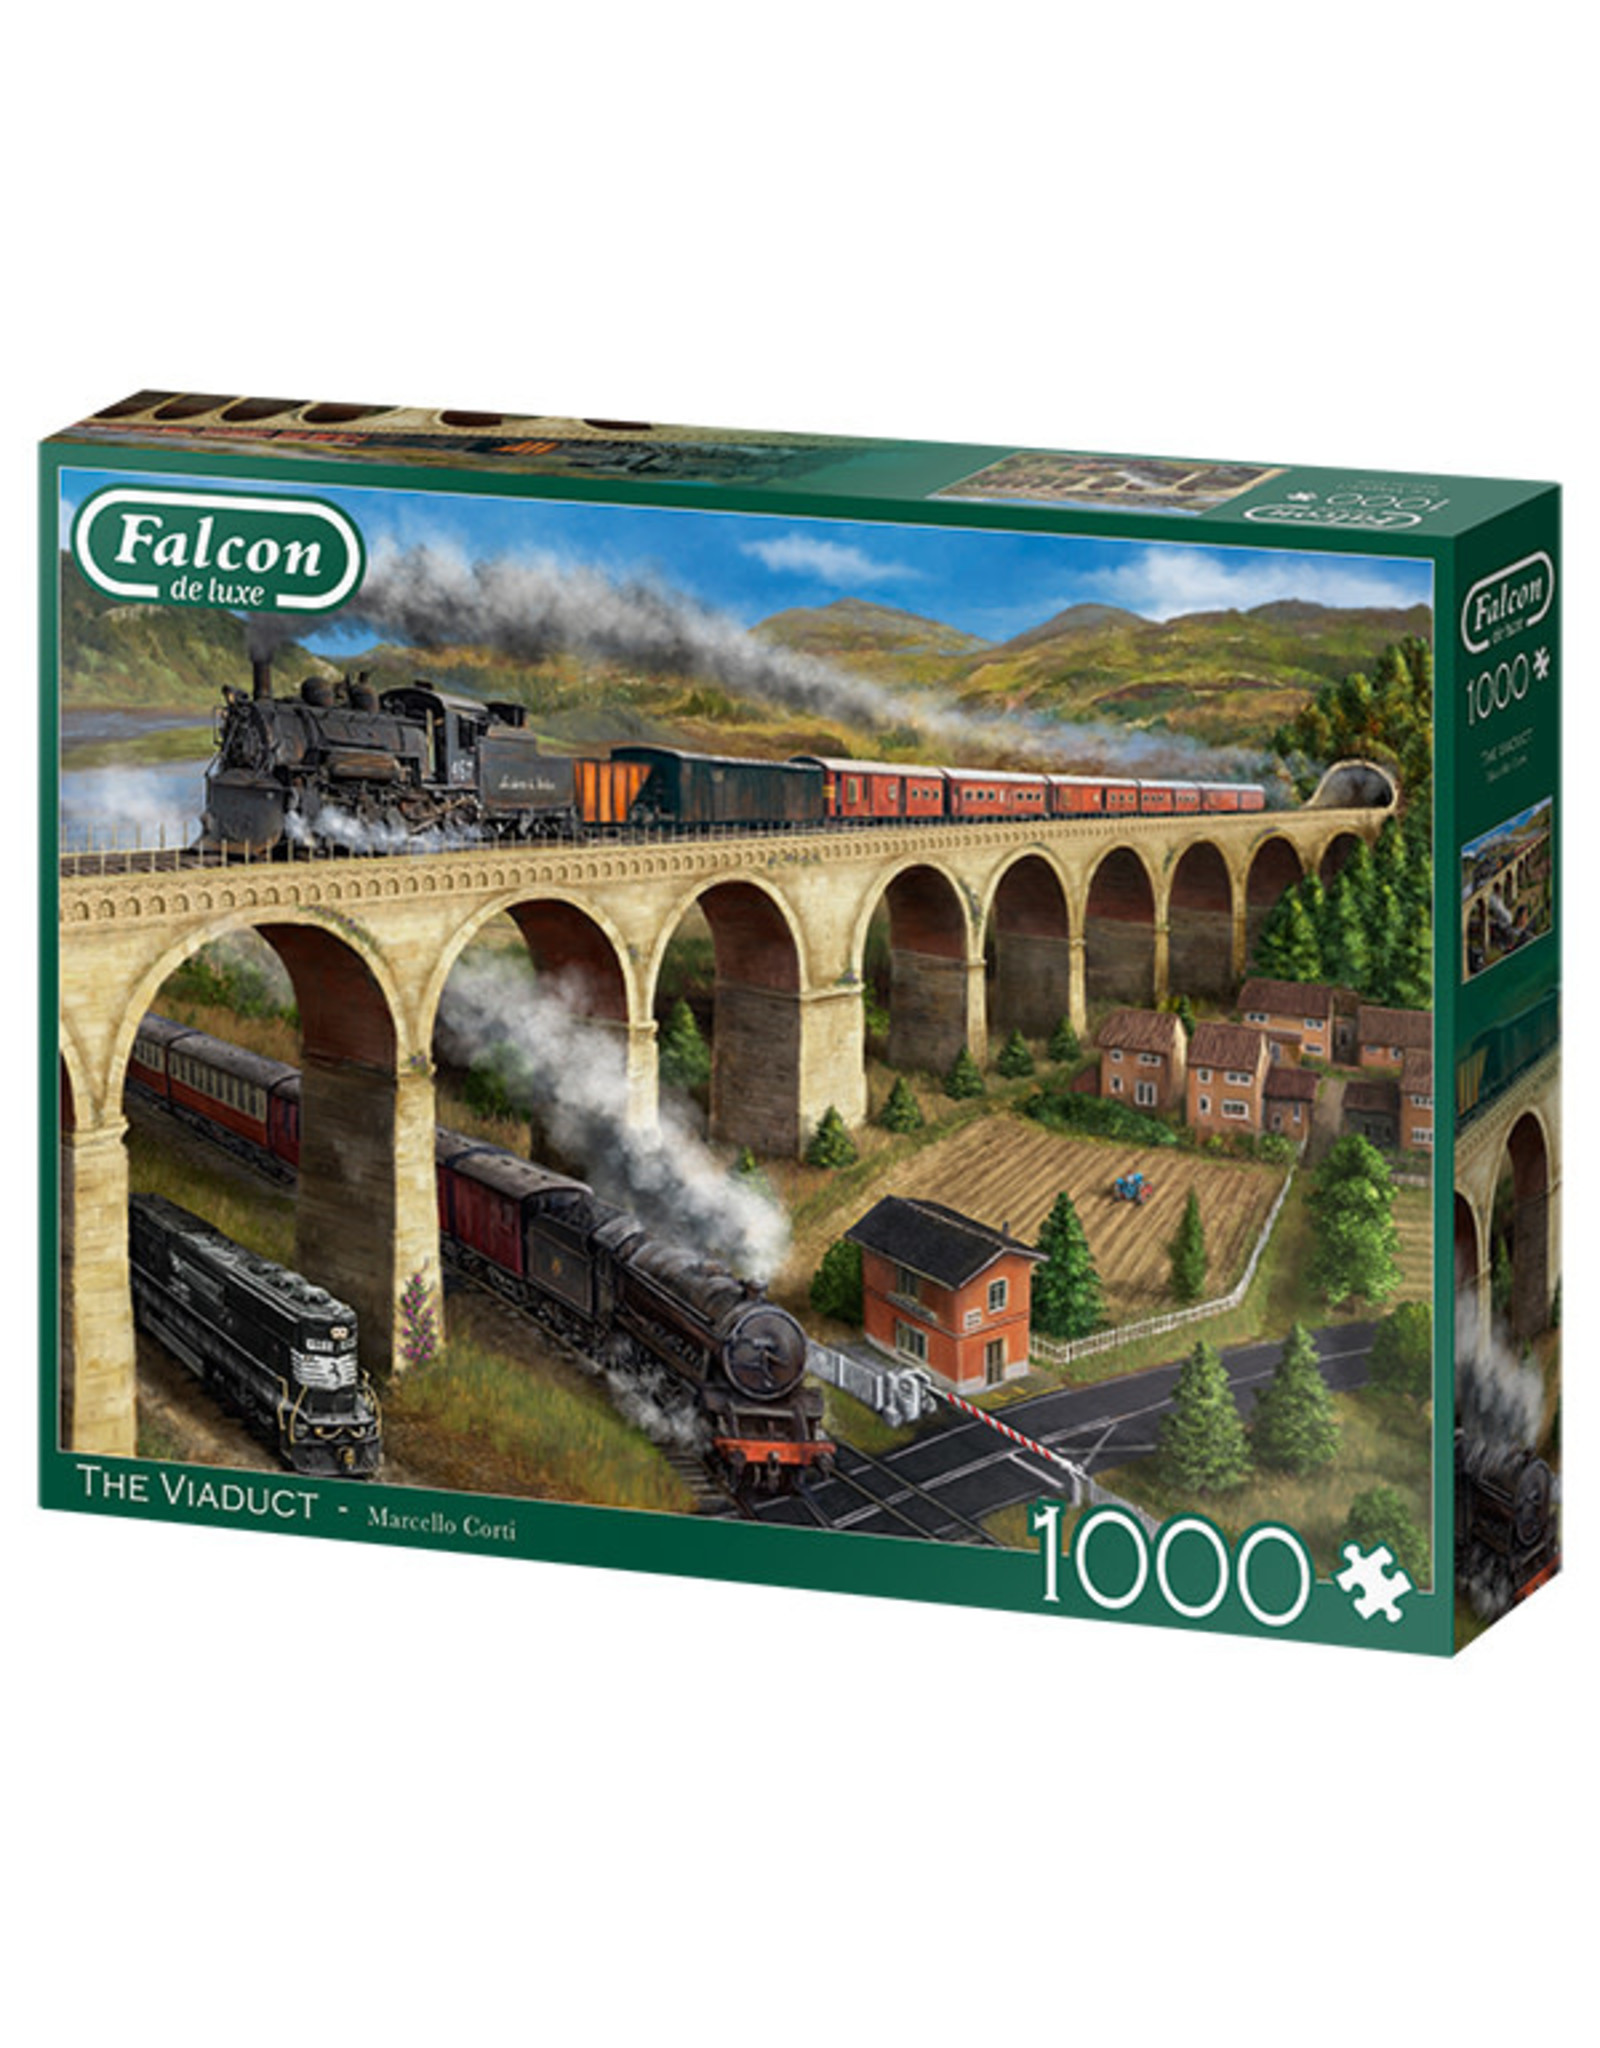 Falcon The Viaduct 1000pc Puzzle